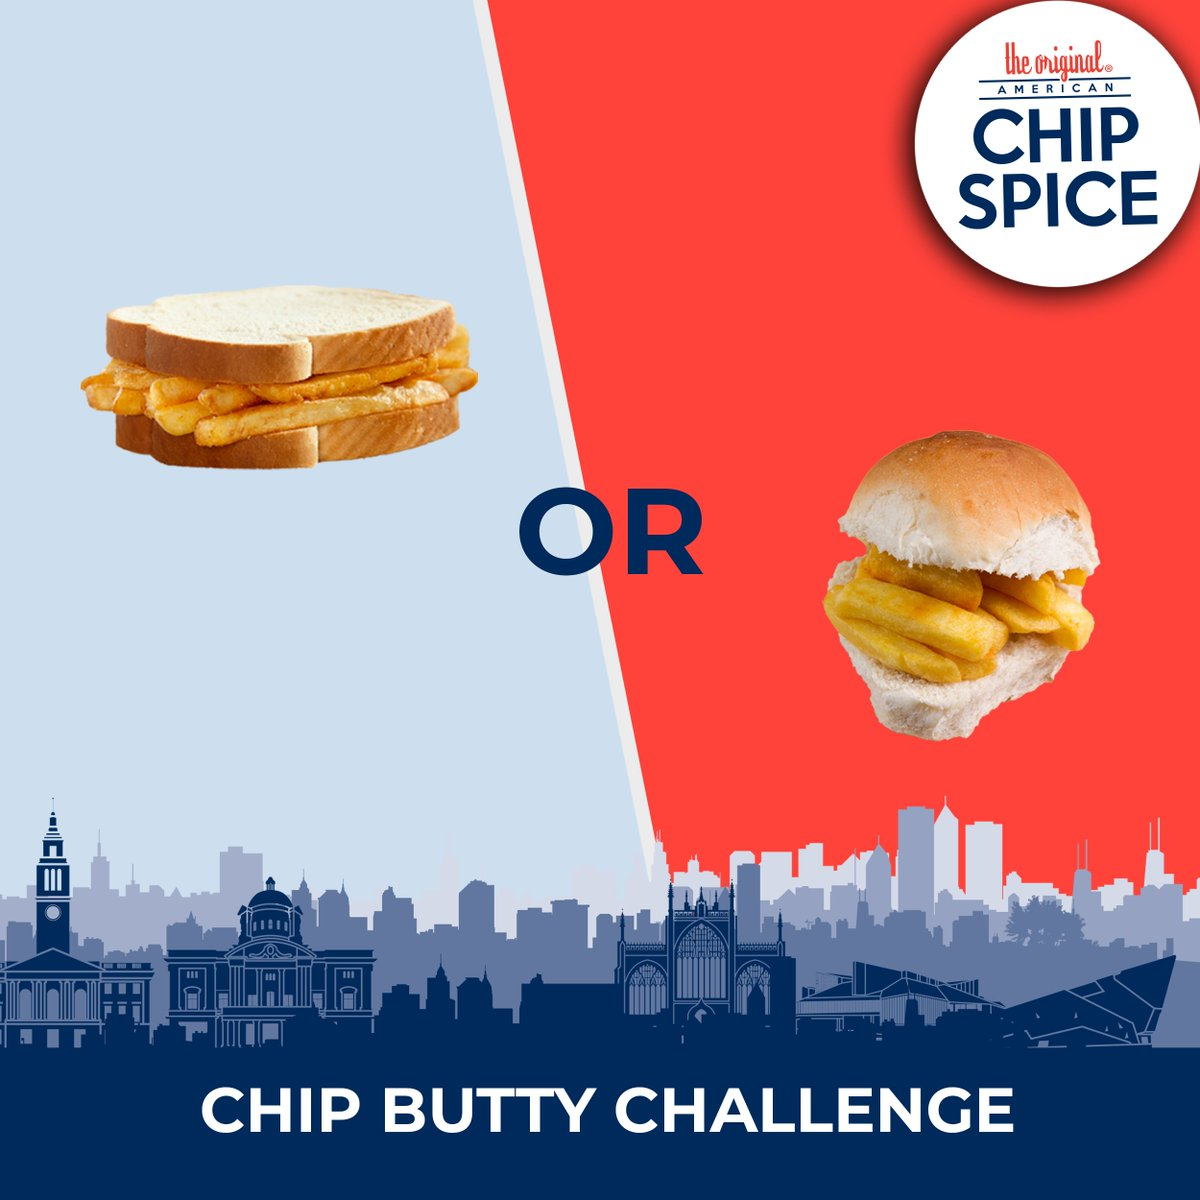 Let the battle of the bread commence! 💥 To make the BEST chip butty, do you go for the modest white sliced bread, or the fluffy round breadcake? Tell us in the comments...  #chipspice #chipspiceitup #americanchipspice  #Food #Yummy #Foodie  #Delicious #Hull #Classic #Instafood